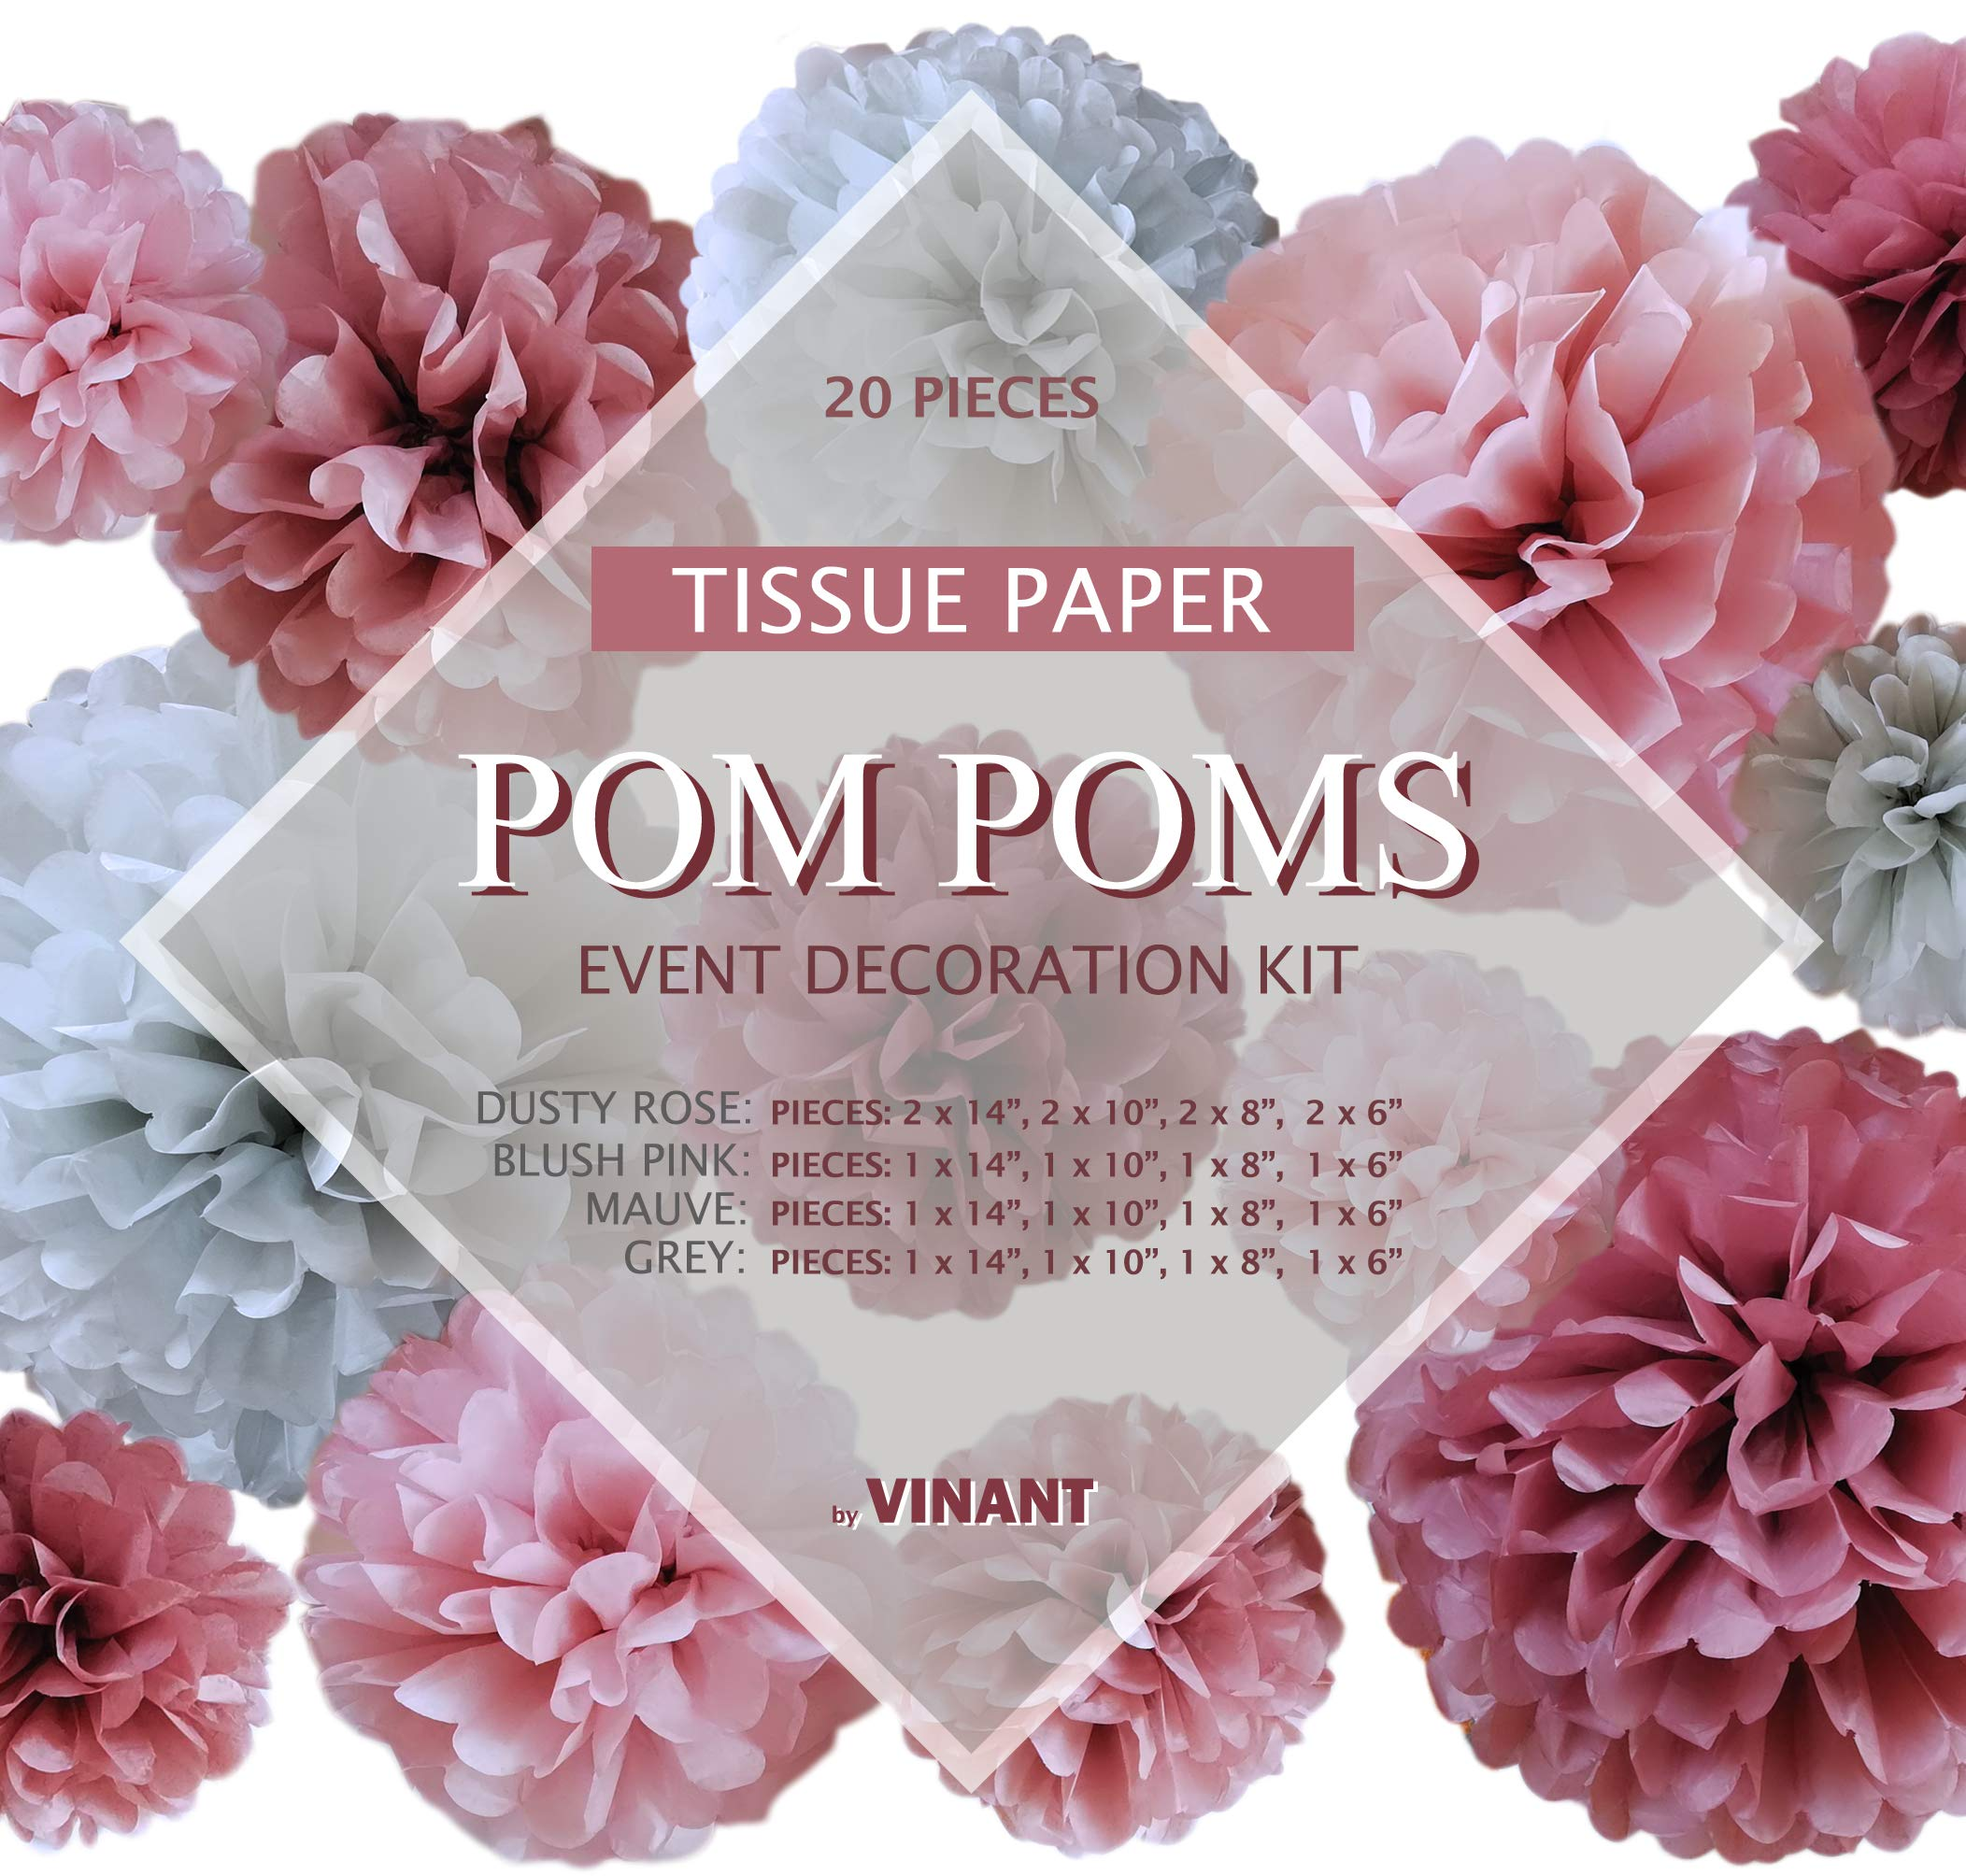 VINANT 20 PCS Tissue Paper Pom Poms - Paper Flower - Party Decoration for Birthday Party - Baby Shower - Bridal Shower - Wedding - Bachelorette - Dusty Rose, Mauve, Blush Pink, Grey - 14'', 10'', 8'', 6'' by VINANT (Image #2)